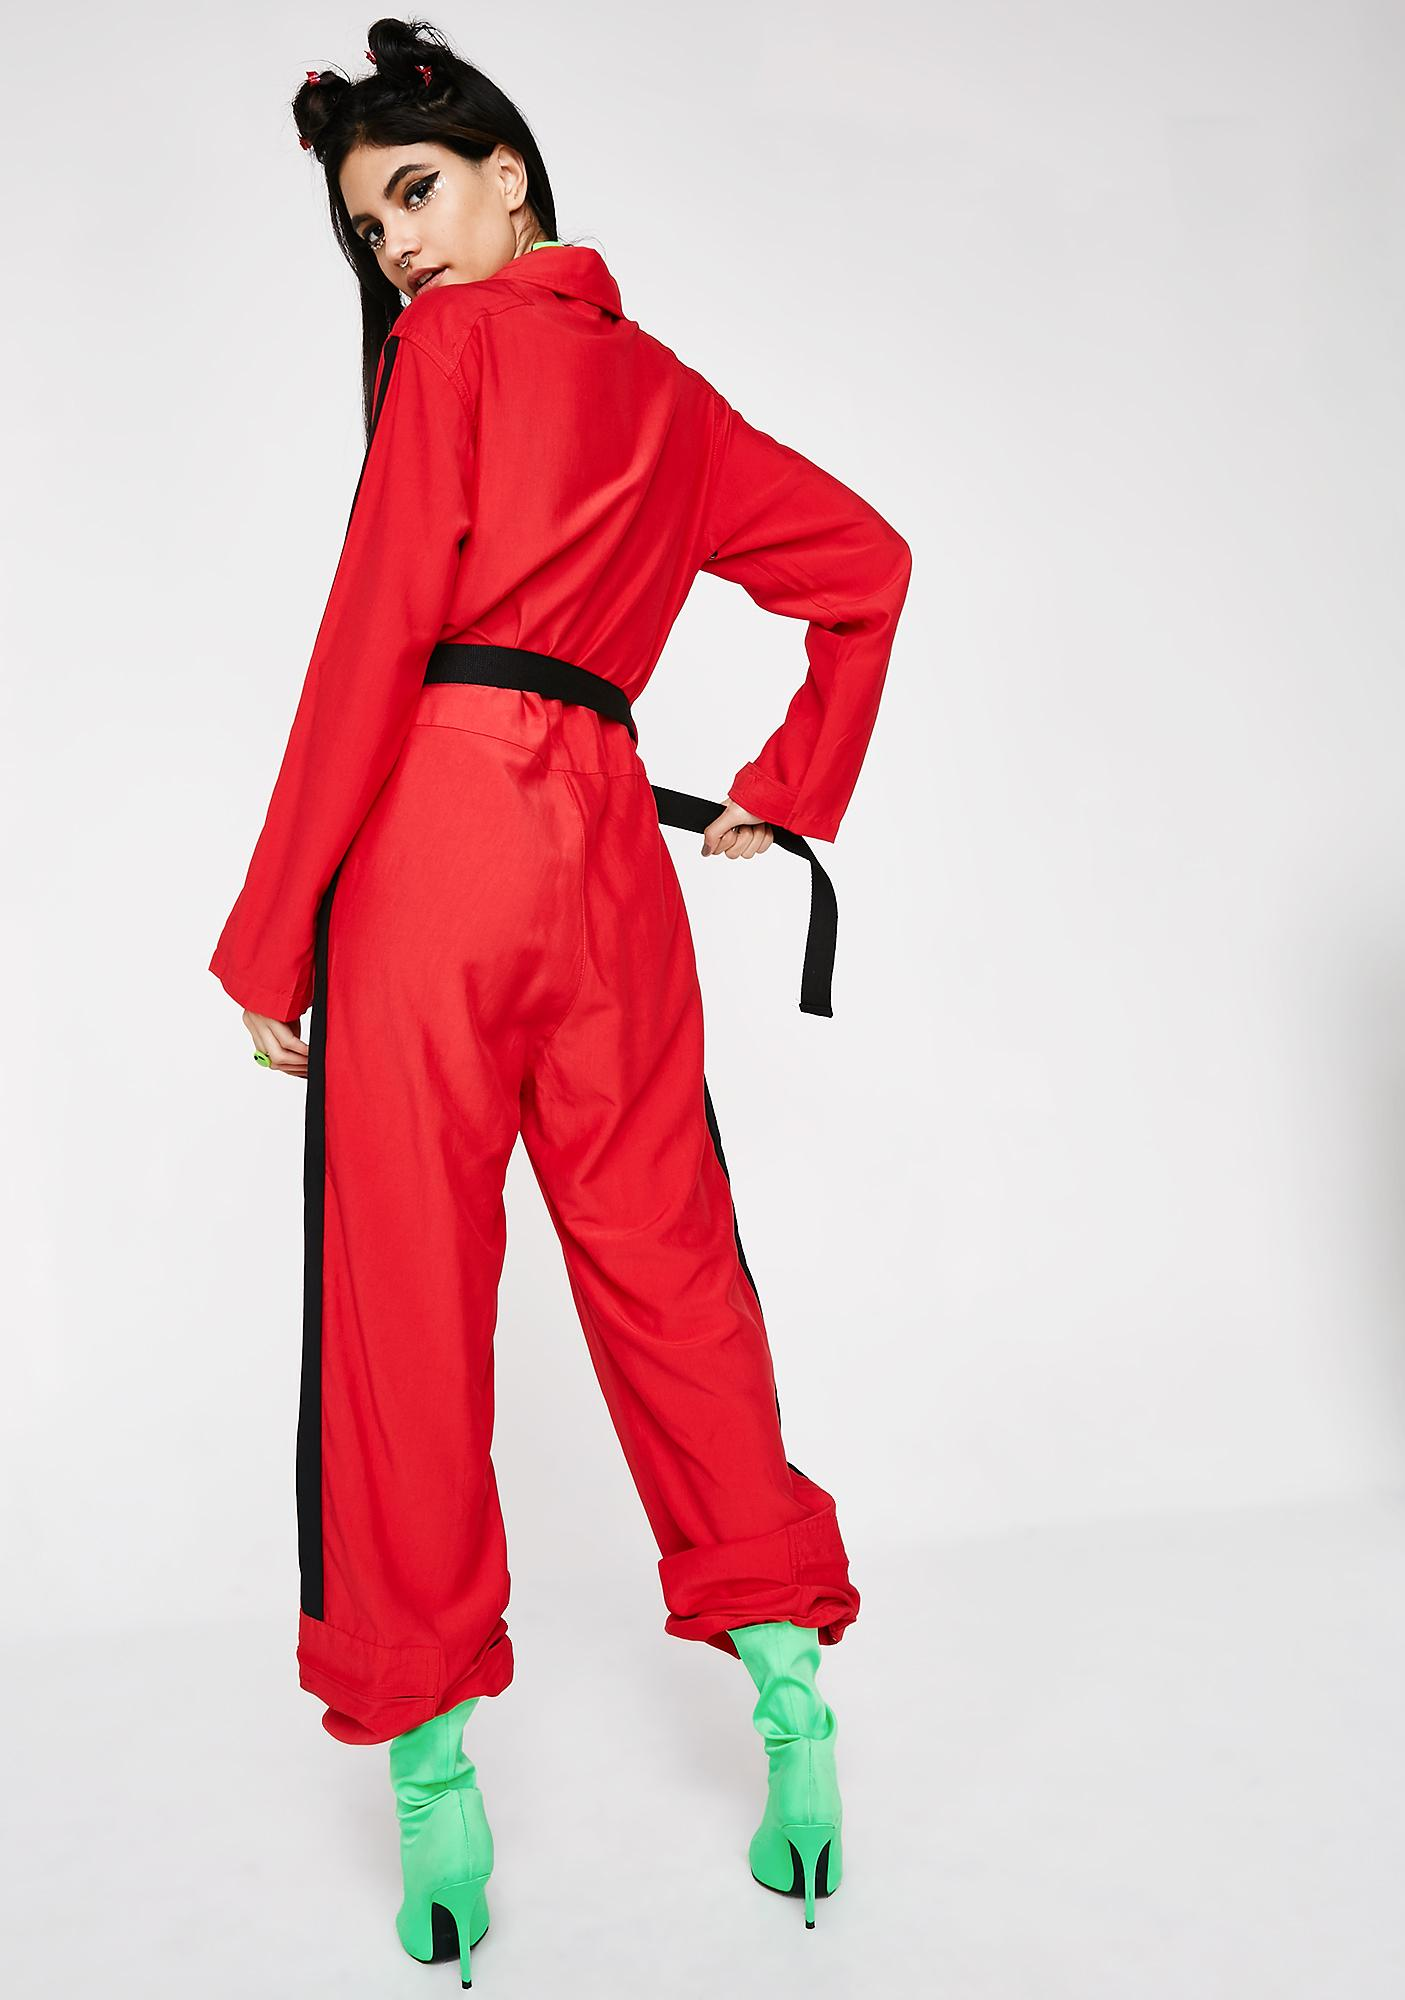 689335b5e53 ... I AM GIA Burn Boiler 2.0 Jumpsuit ...